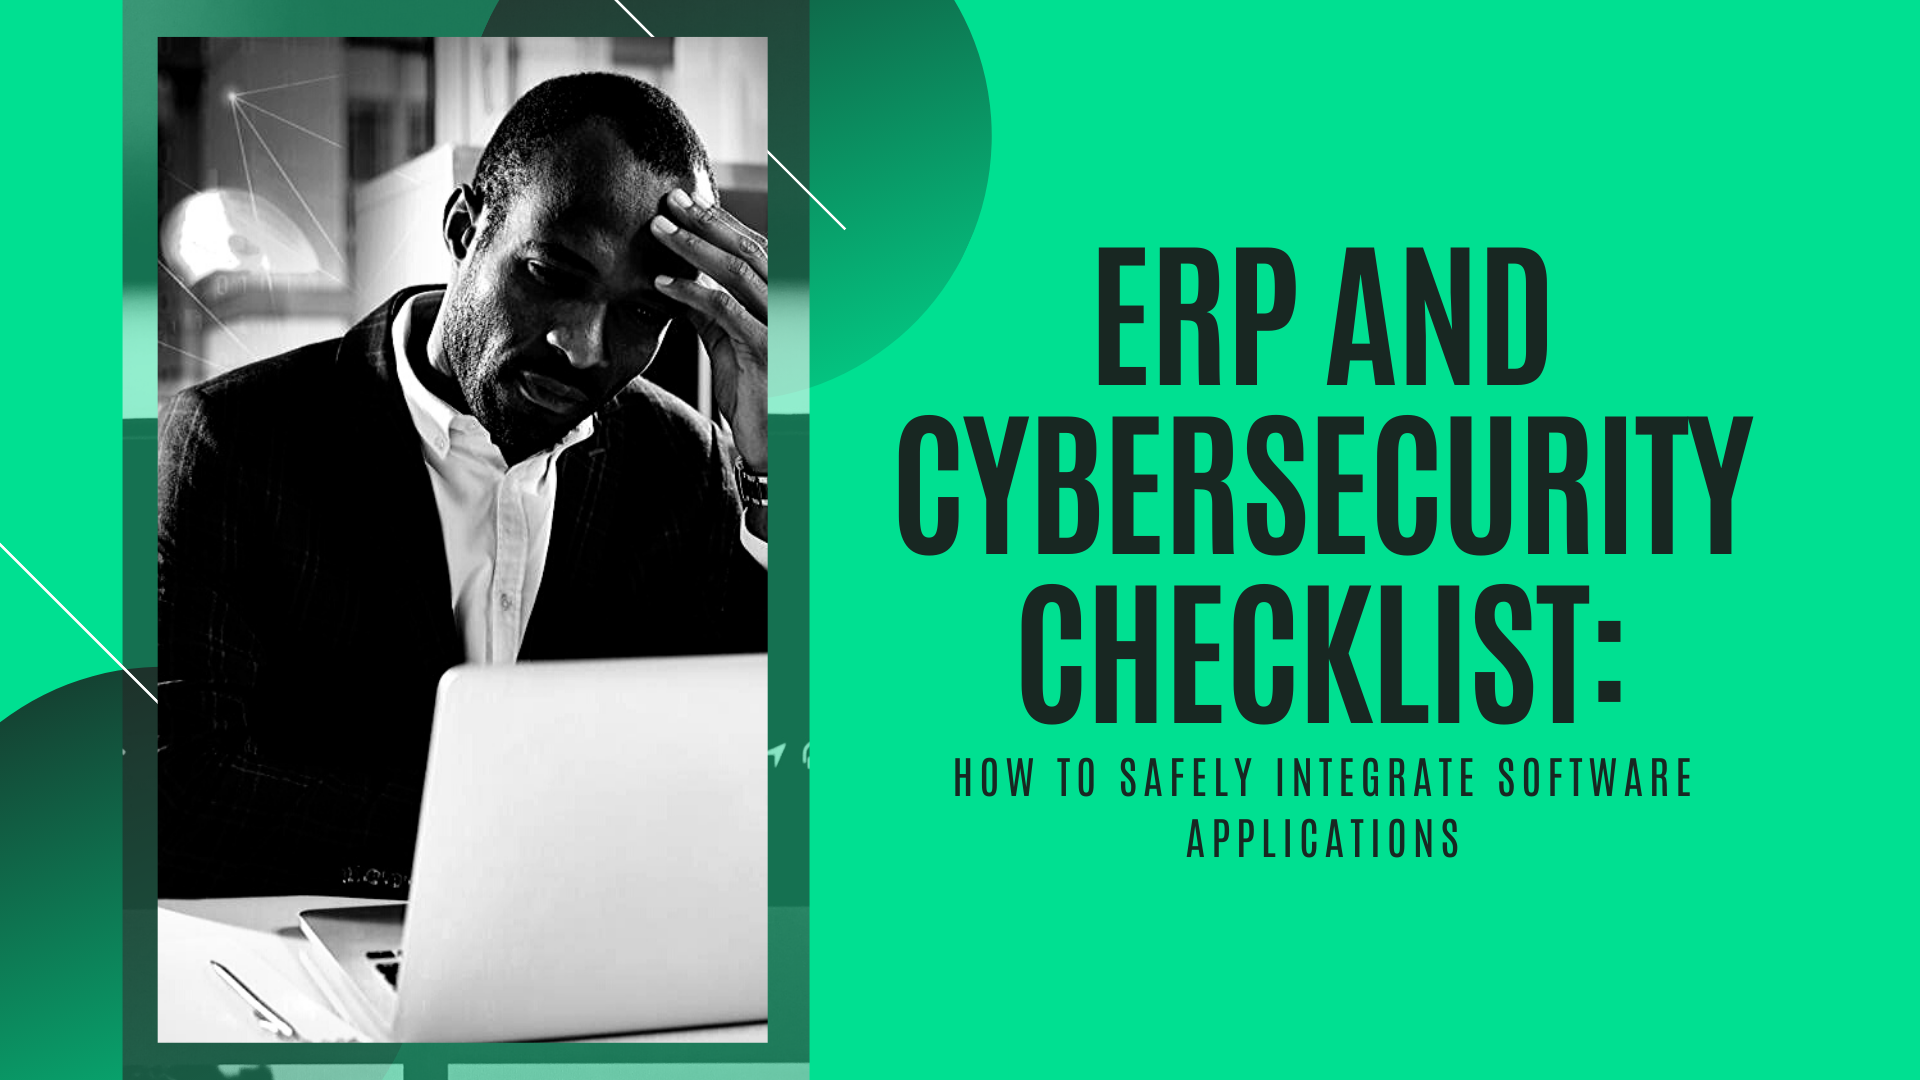 ERP and Cybersecurity Checklist: How to Safely Integrate Software Applications